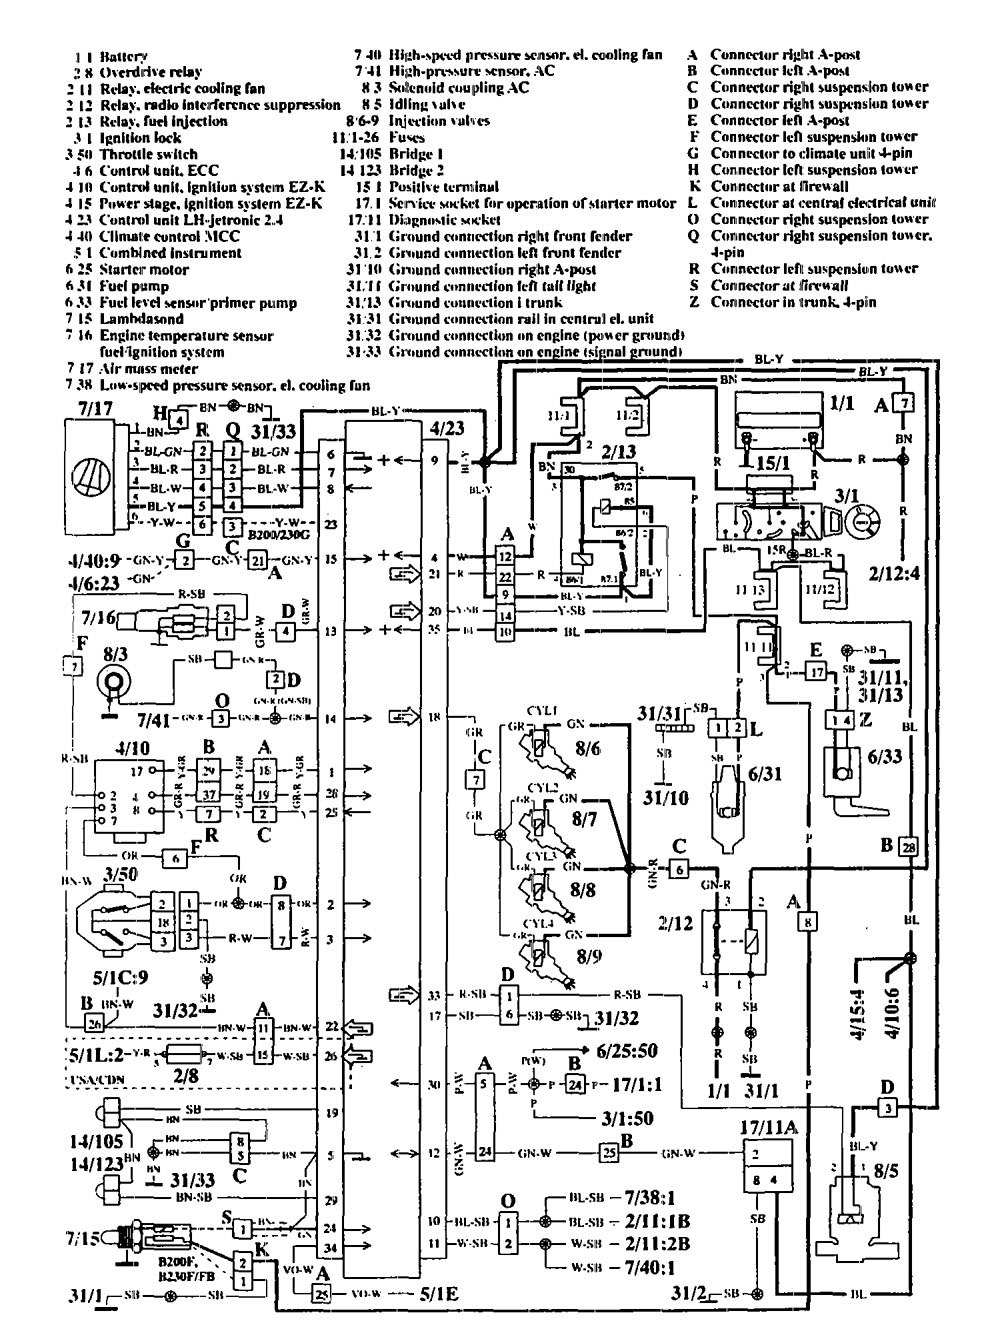 1986 Volvo 740 Wiring Diagram 1994 960 Stereo Library 940 1997 29 Images 1995 Radio 1991